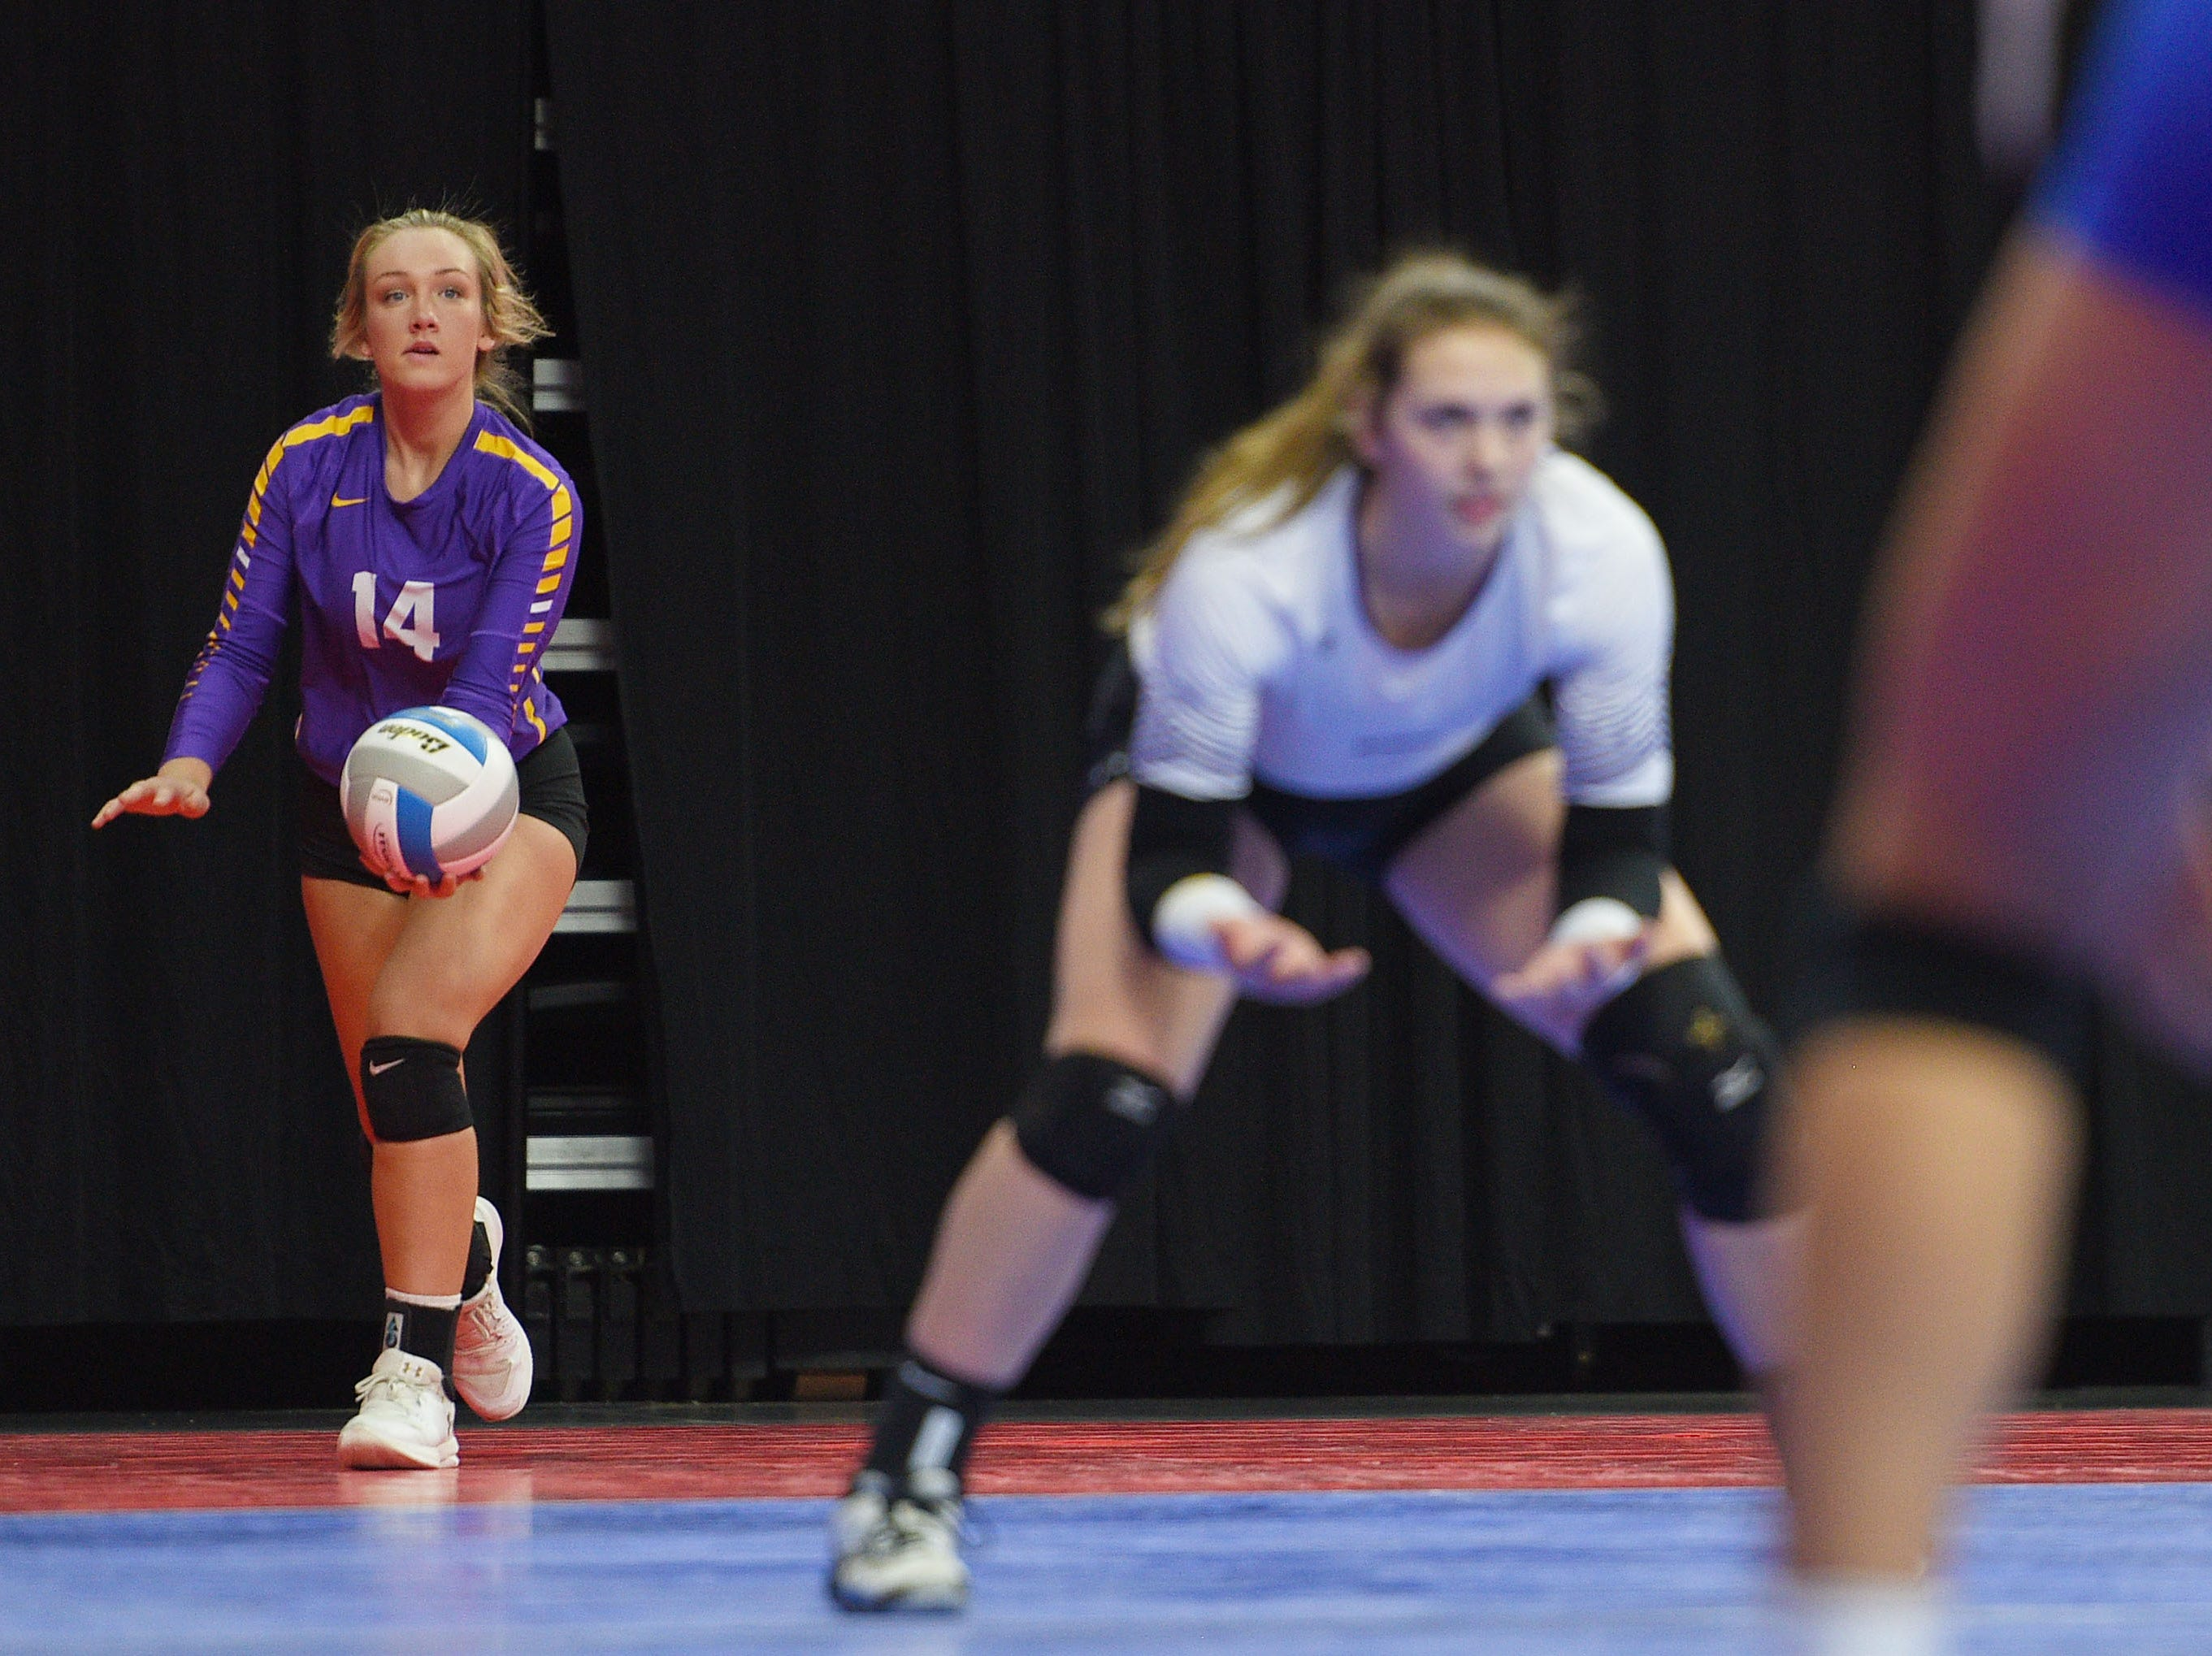 Watertown's Alexx Bayles during the game against RC Stevens during the semifinals Friday, Nov. 16, at the Denny Sanford Premier Center in Sioux Falls.